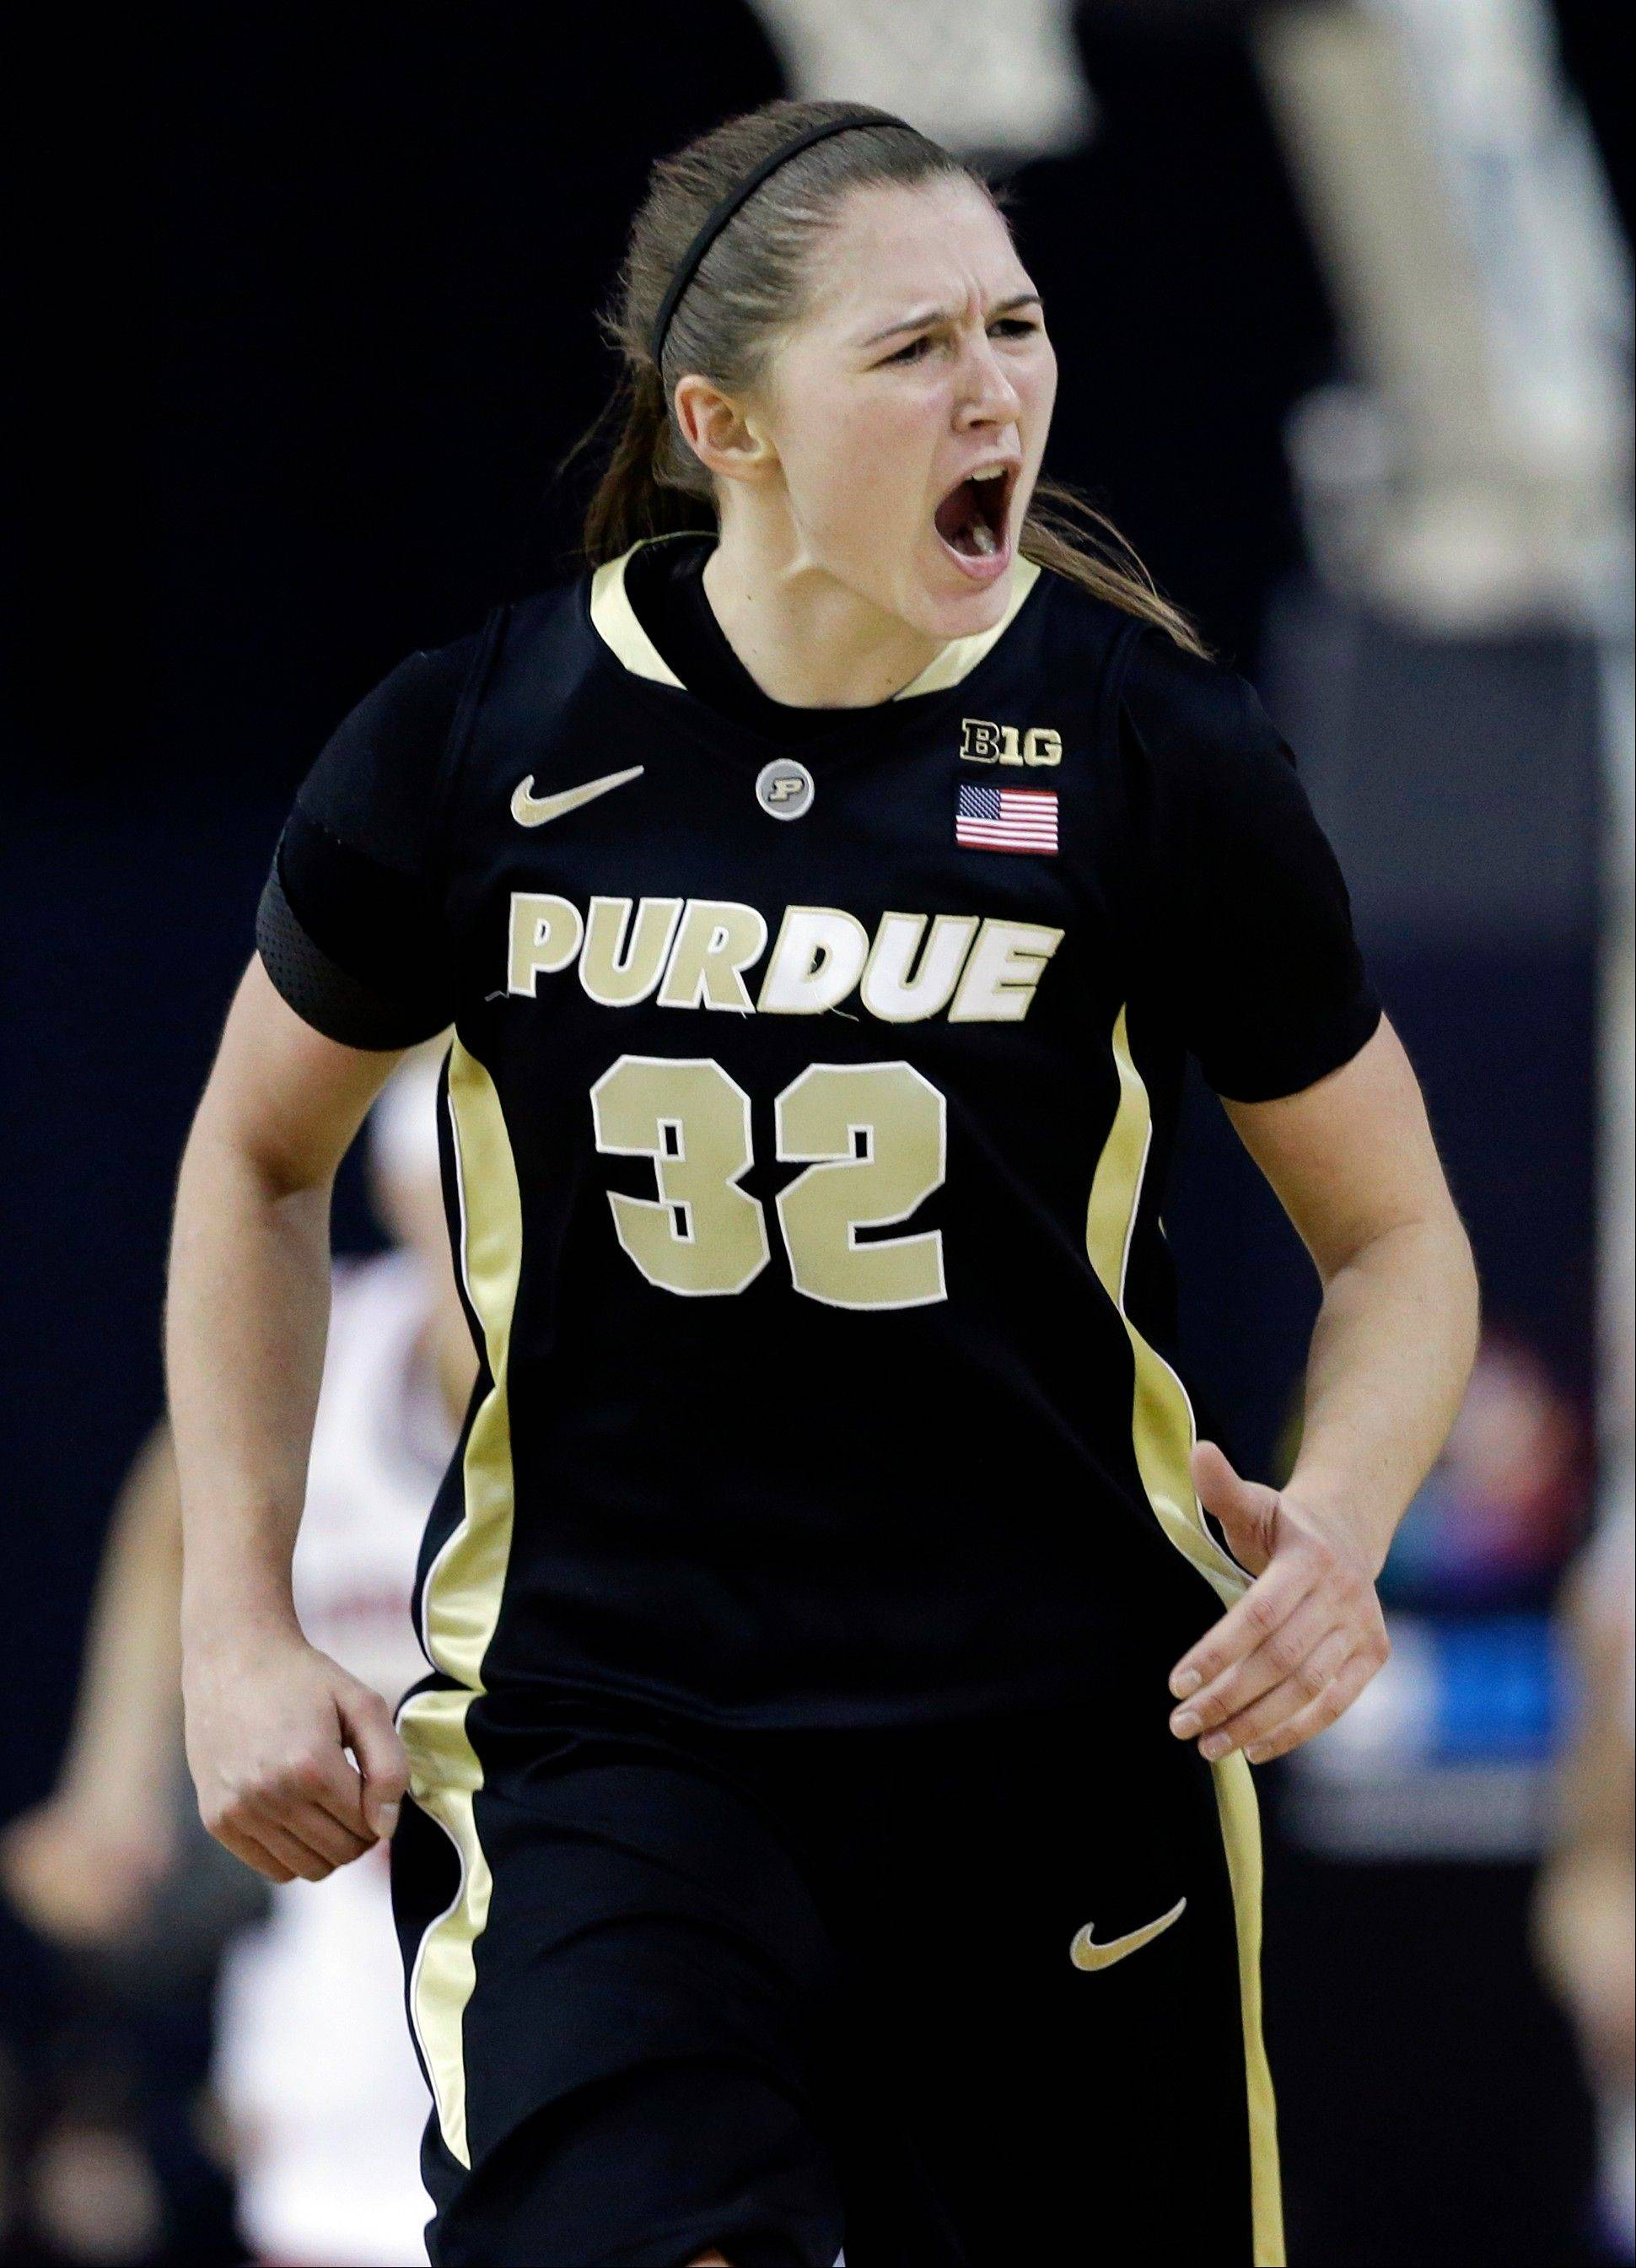 Purdue forward Sam Ostarello reacts after scoring a basket during the second half of an NCAA college basketball game against Nebraska in the Big Ten Conference tournament in Hoffman Estates, Ill., Saturday, March 9, 2013. Purdue won 77-64. (AP Photo/Nam Y. Huh)